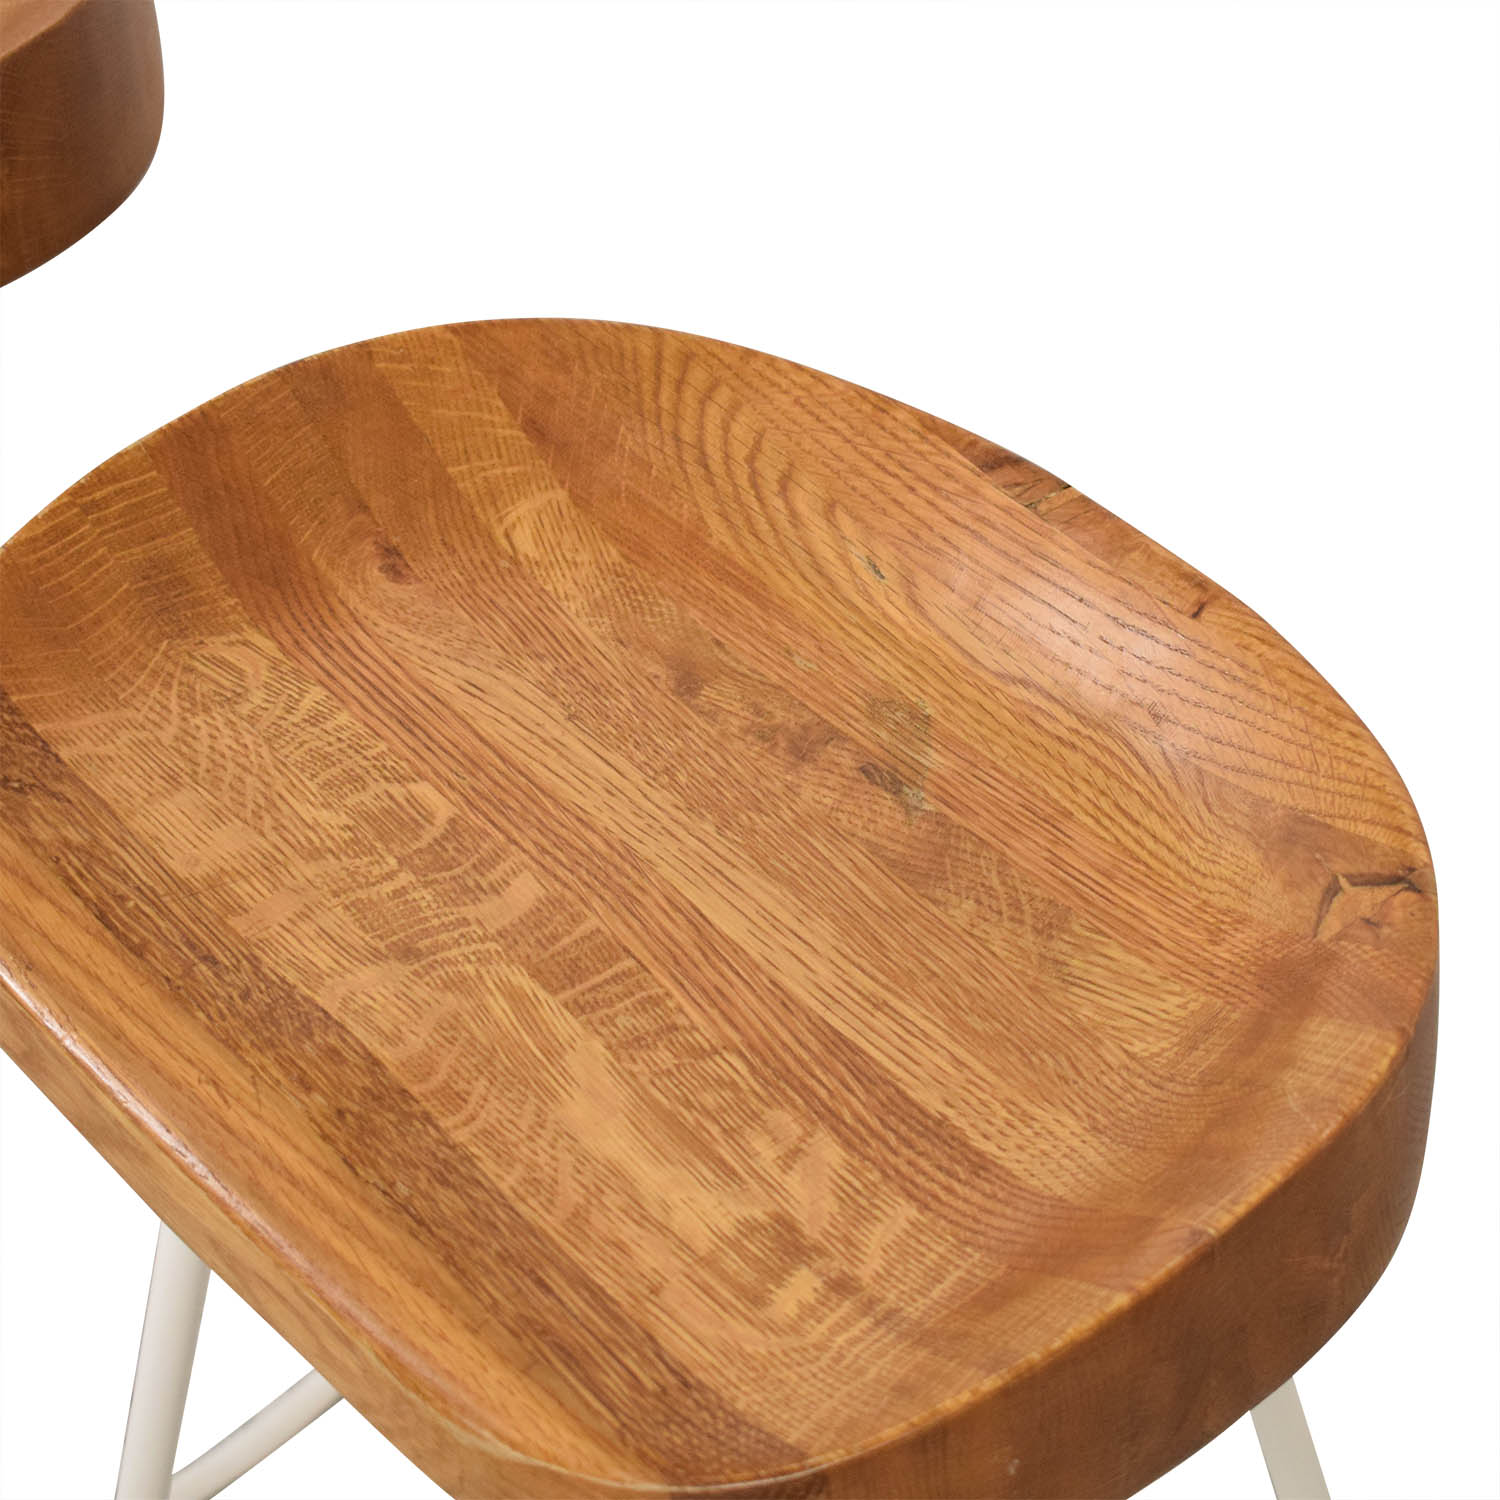 Wisteria Wisteria Natural Smart and Sleek Counter Stools nyc